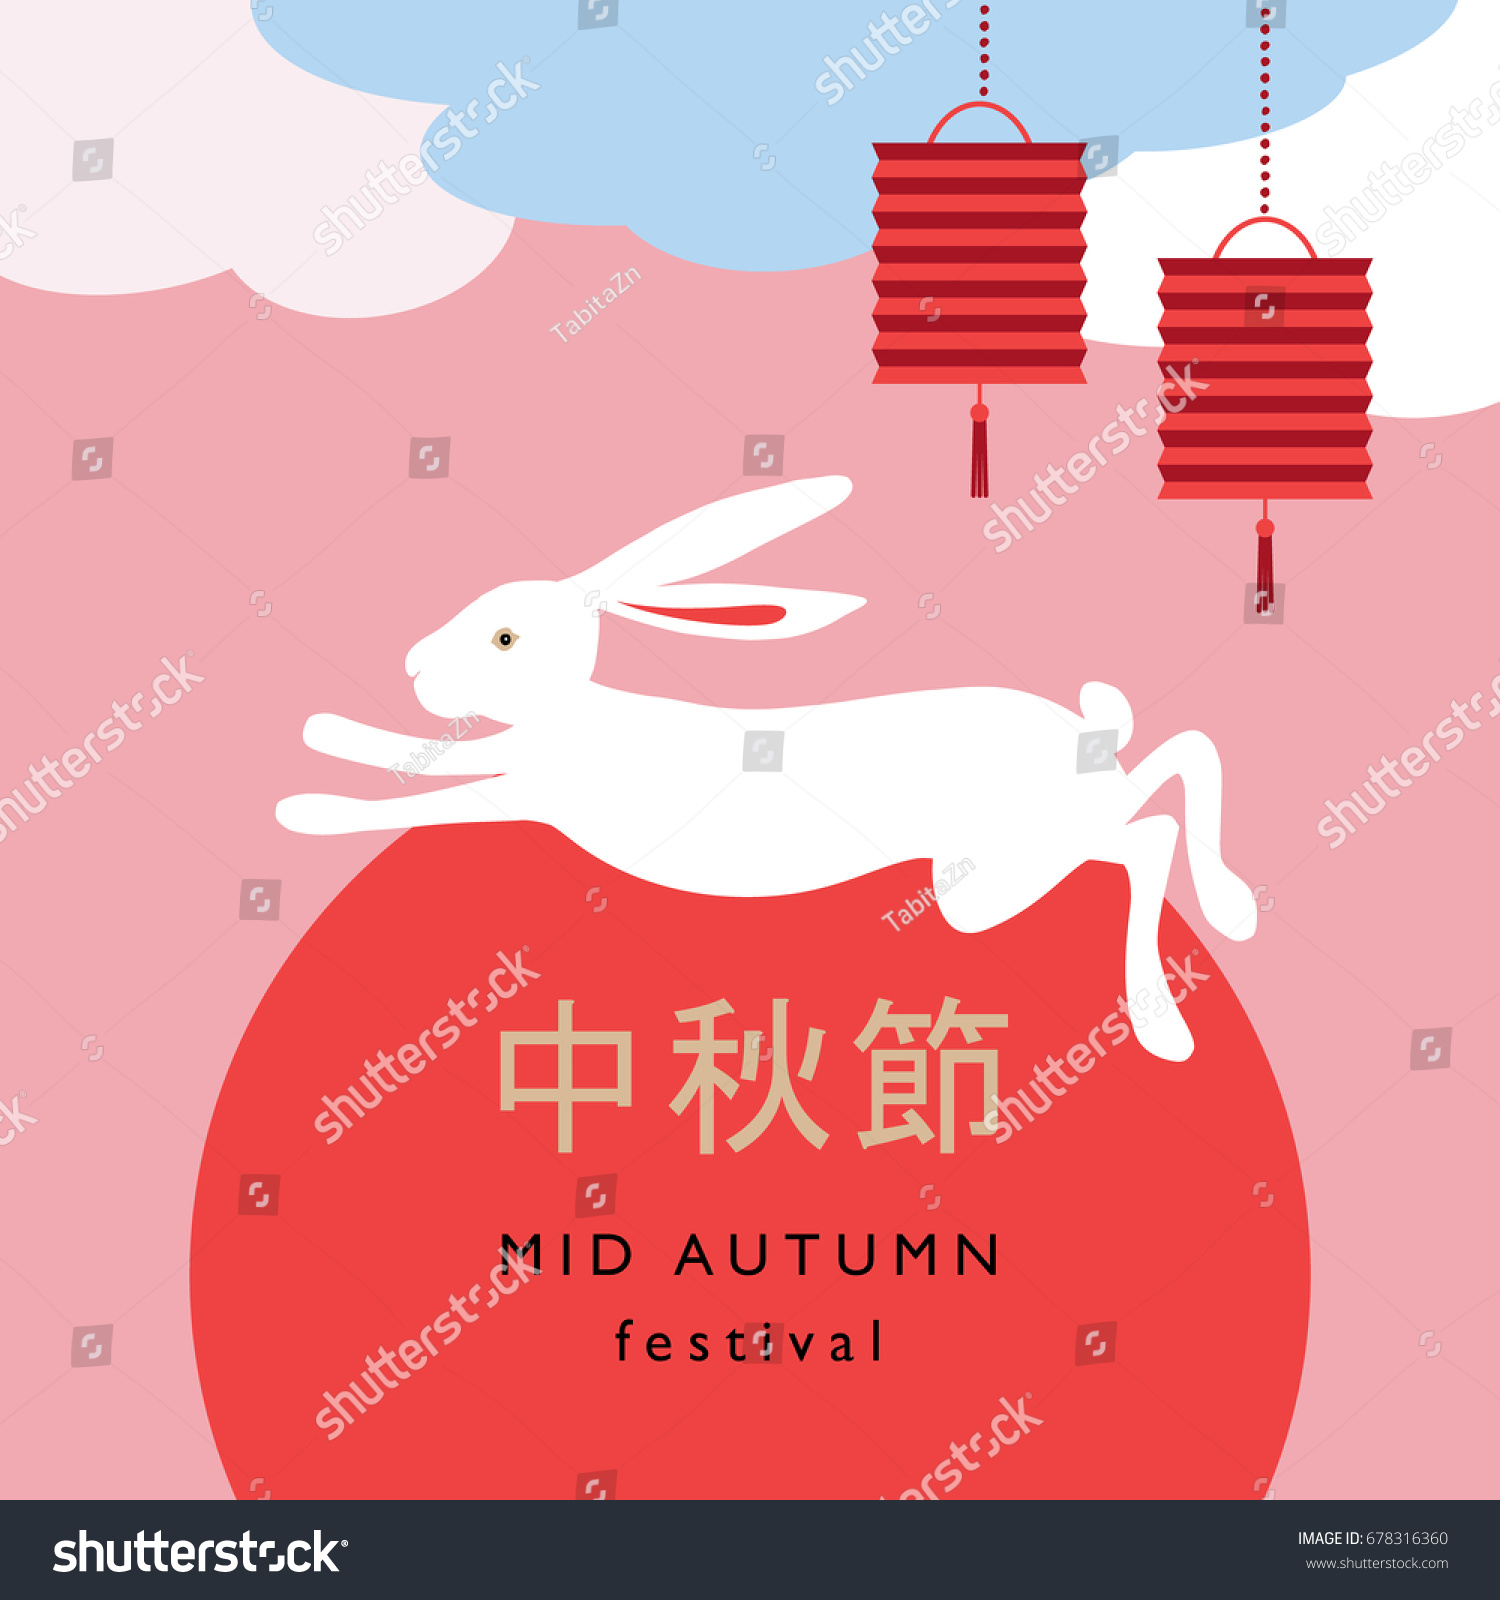 Mid autumn festival greeting card invitation stock vector 678316360 mid autumn festival greeting card invitation with rabbit moon silhouette clouds and red kristyandbryce Choice Image